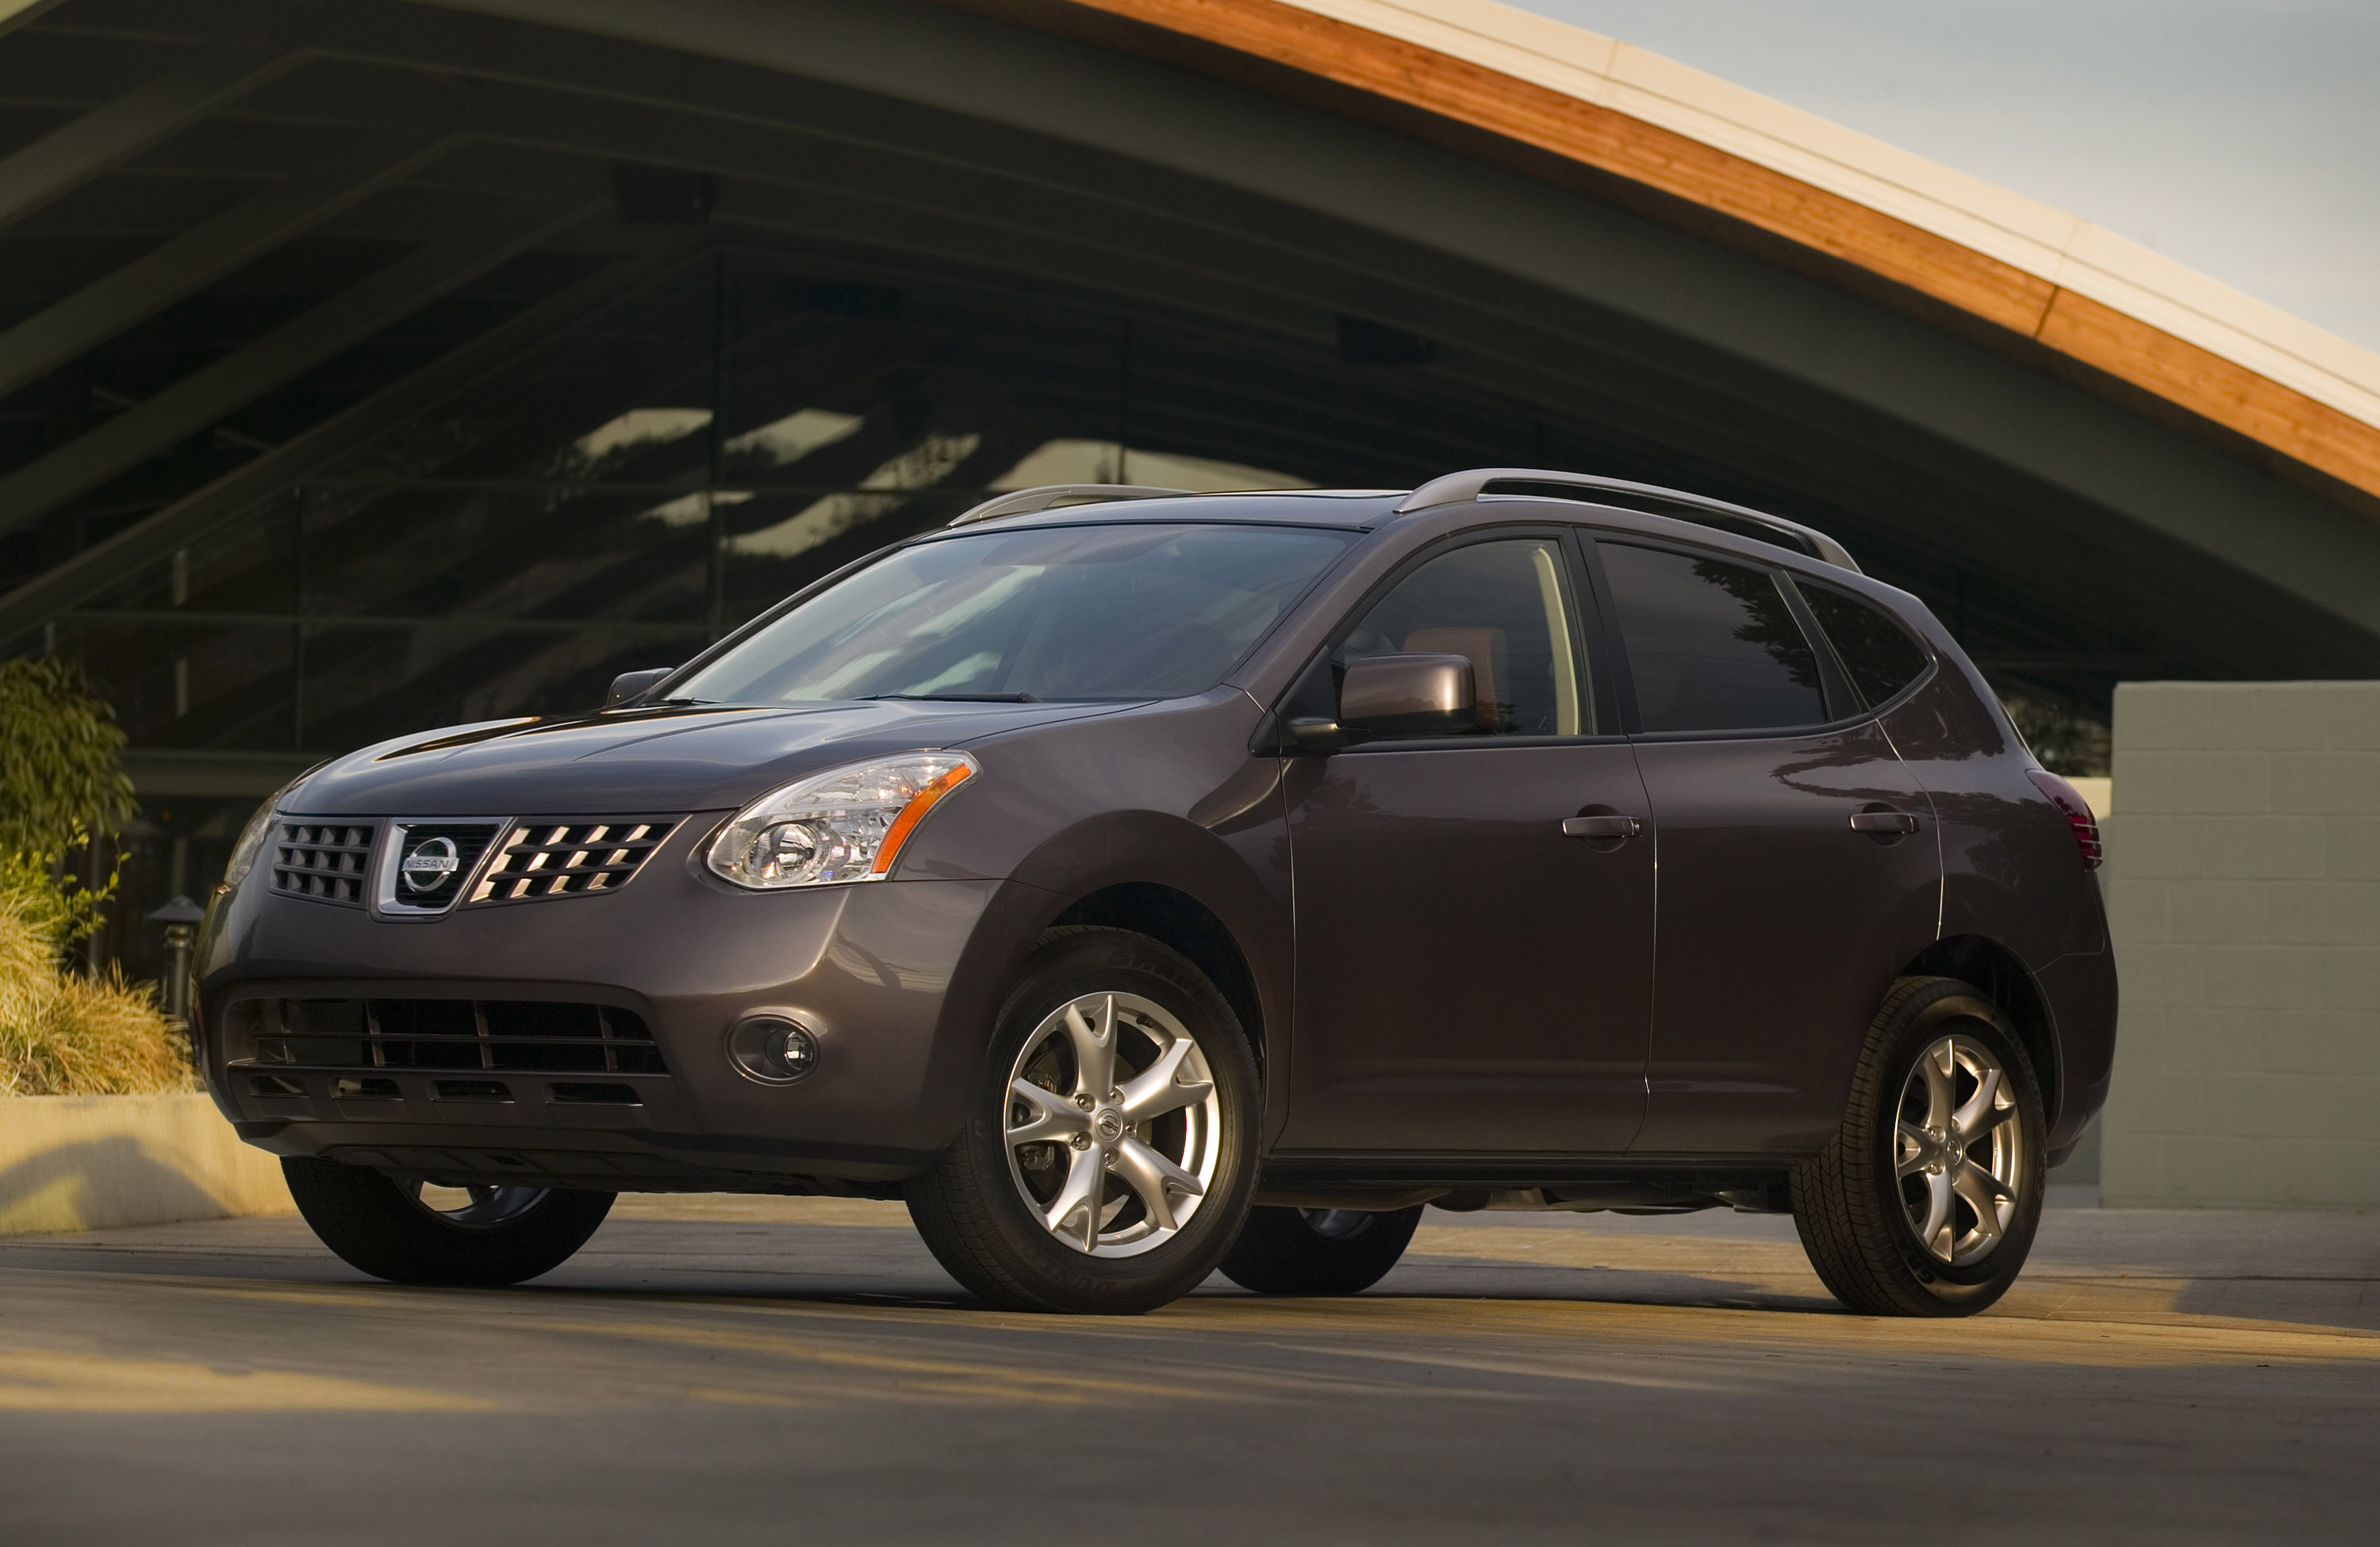 Dodge Cars For Sale >> 2008 Nissan Rogue Pricing Announced | Top Speed